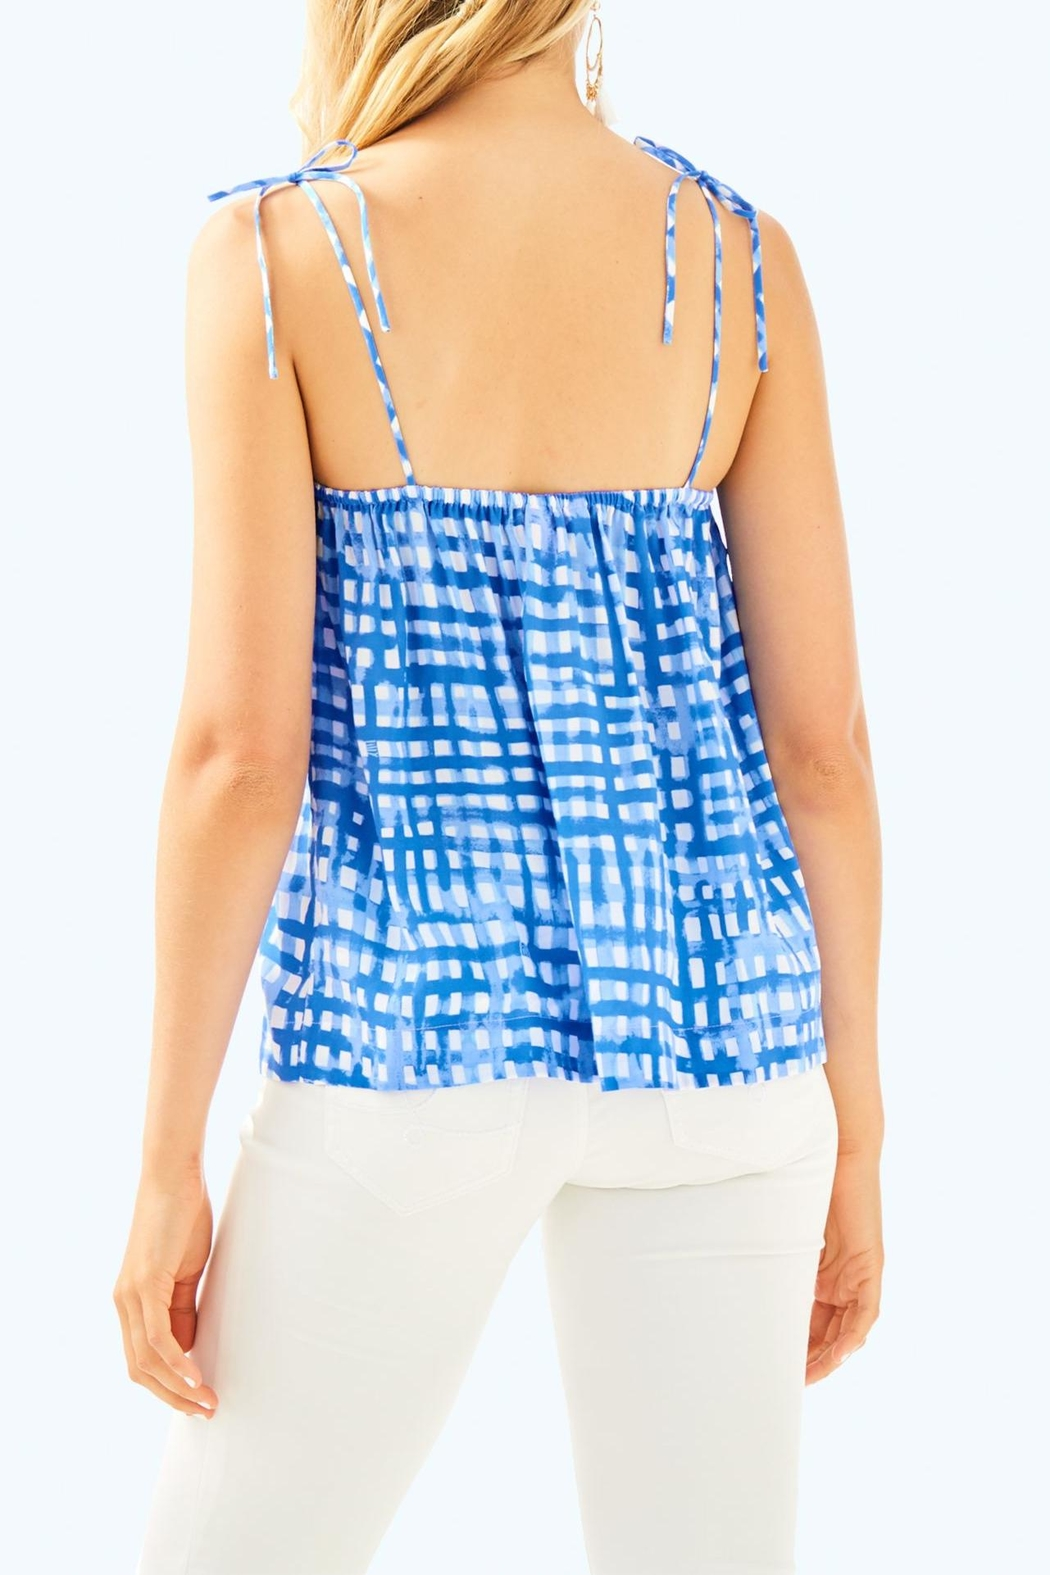 Lilly Pulitzer Silvana Top - Front Full Image